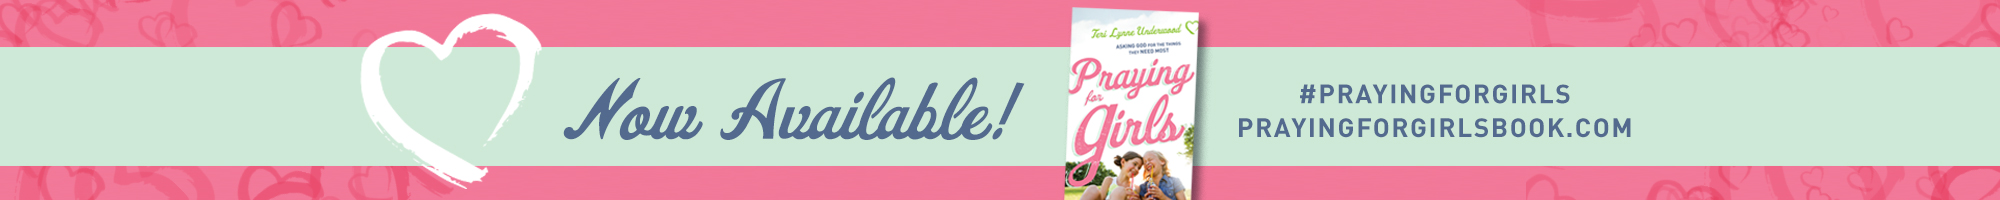 Praying For Girls: Asking God for the Things They Need Most by Teri Lynne Underwood || now available in LifeWay and Barnes & Noble stores as well as all major online retailers